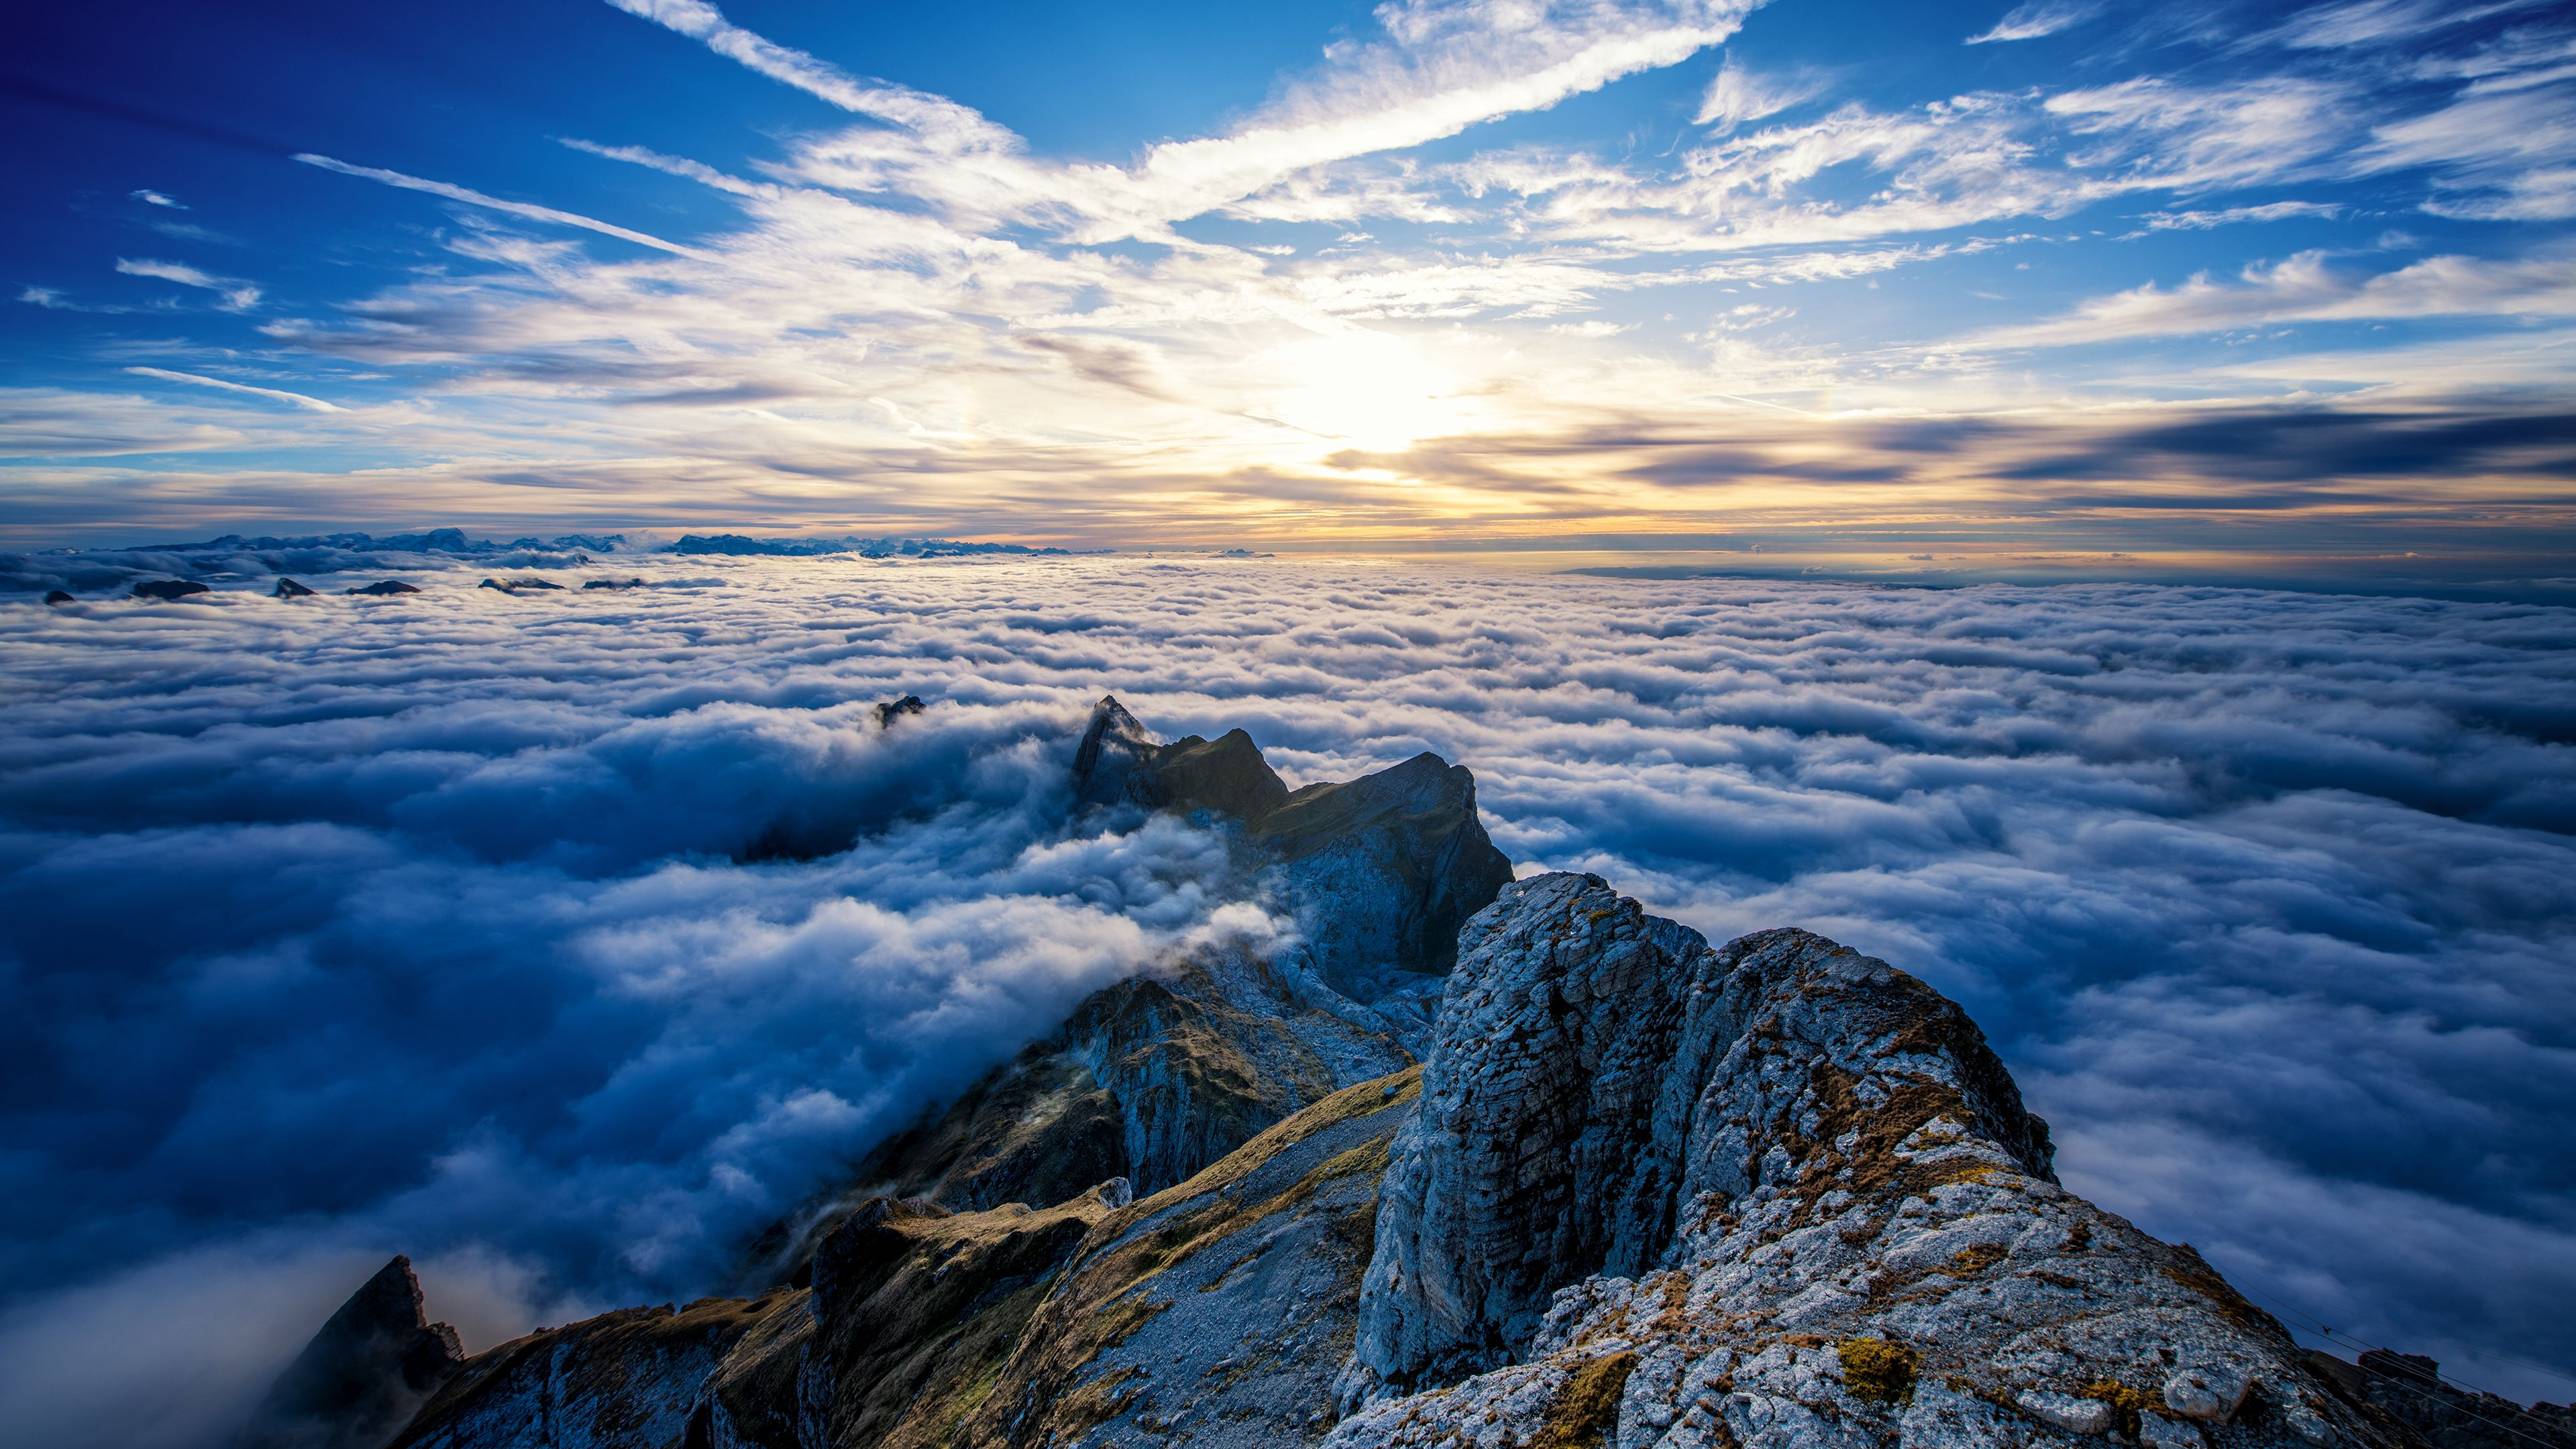 Clouds 4K Wallpapers - Top Free Clouds 4K Backgrounds ...